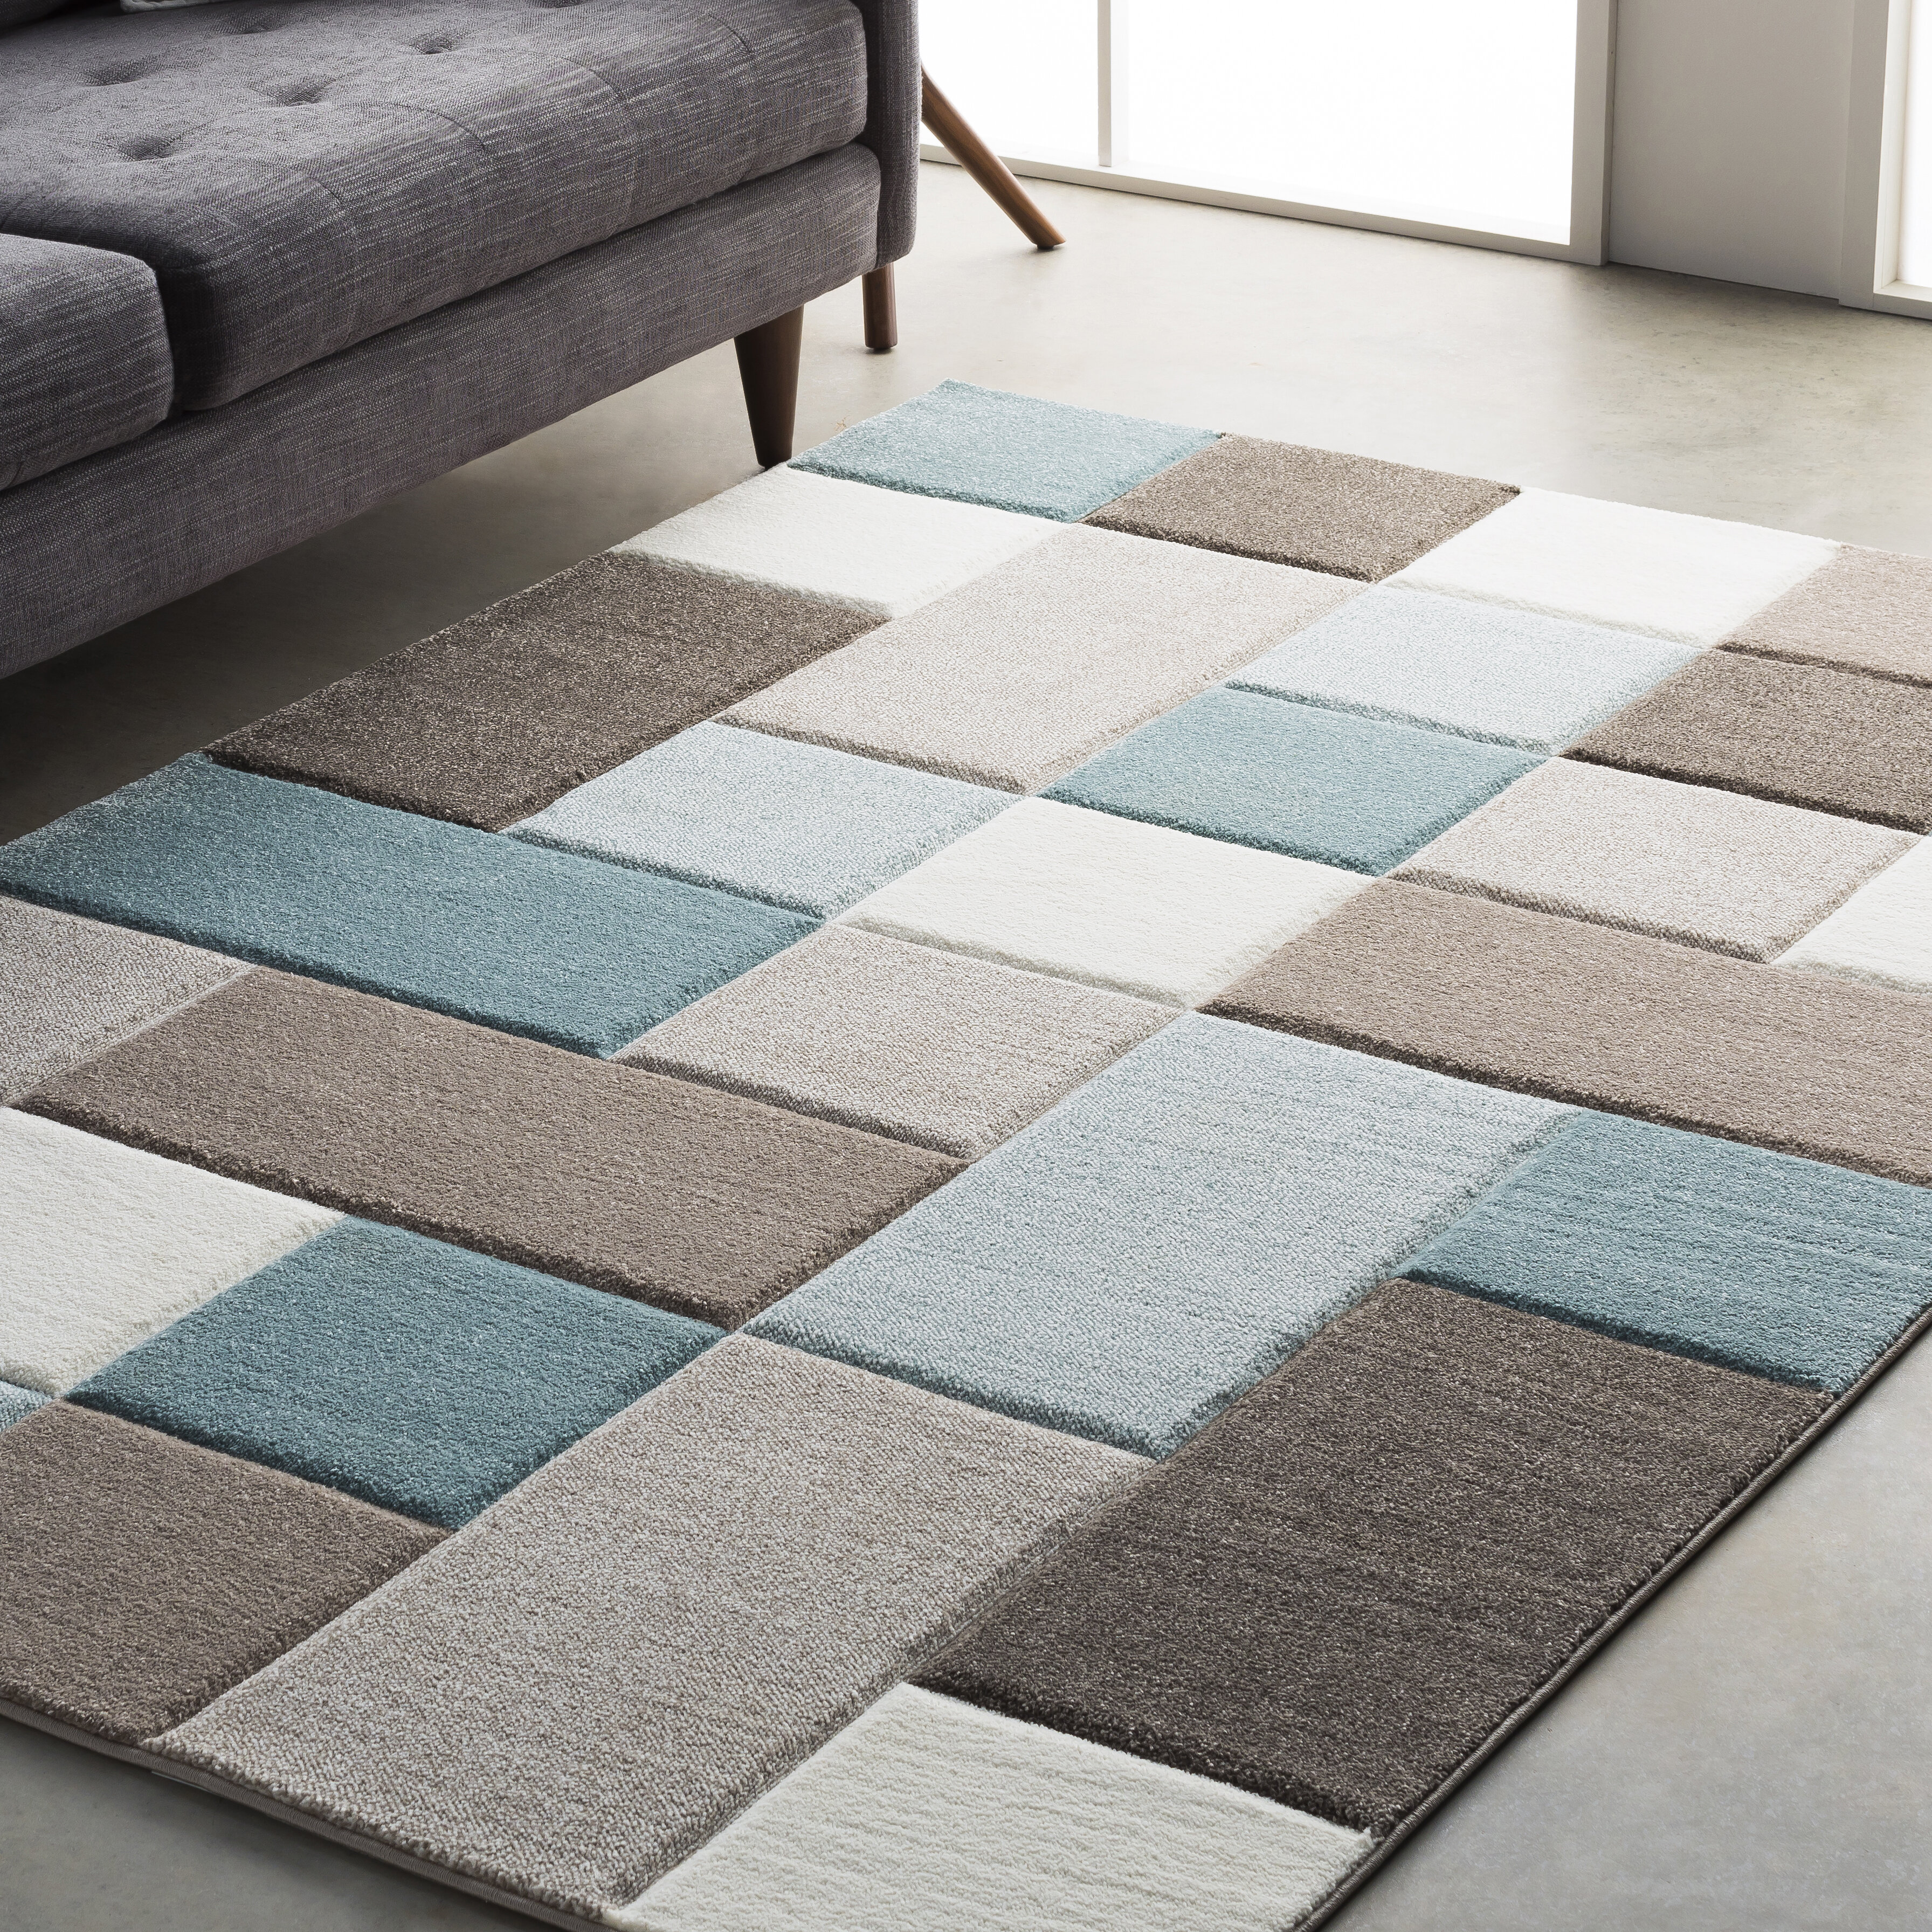 design products decor dorm rm online by rugs buy pearl burke rug area nourison ocean